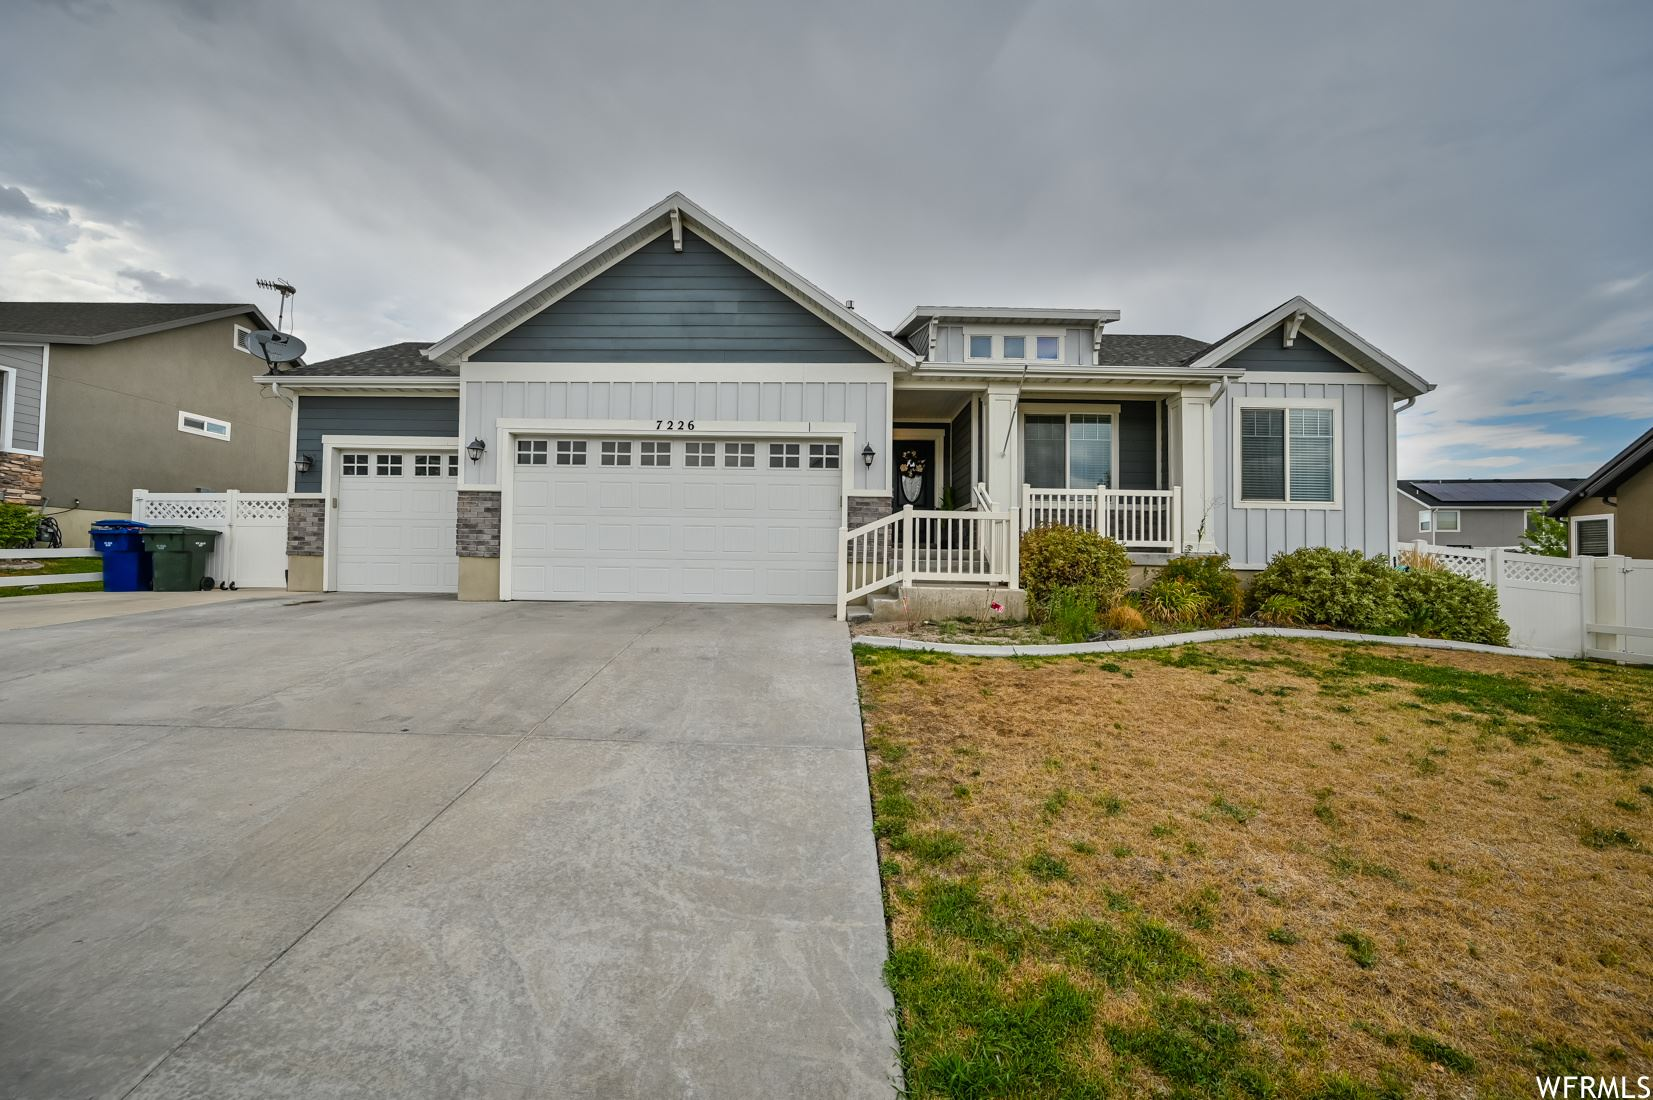 Photo of 7226 W SILHOUETTE S LN, West Valley City, UT 84081 (MLS # 1757227)